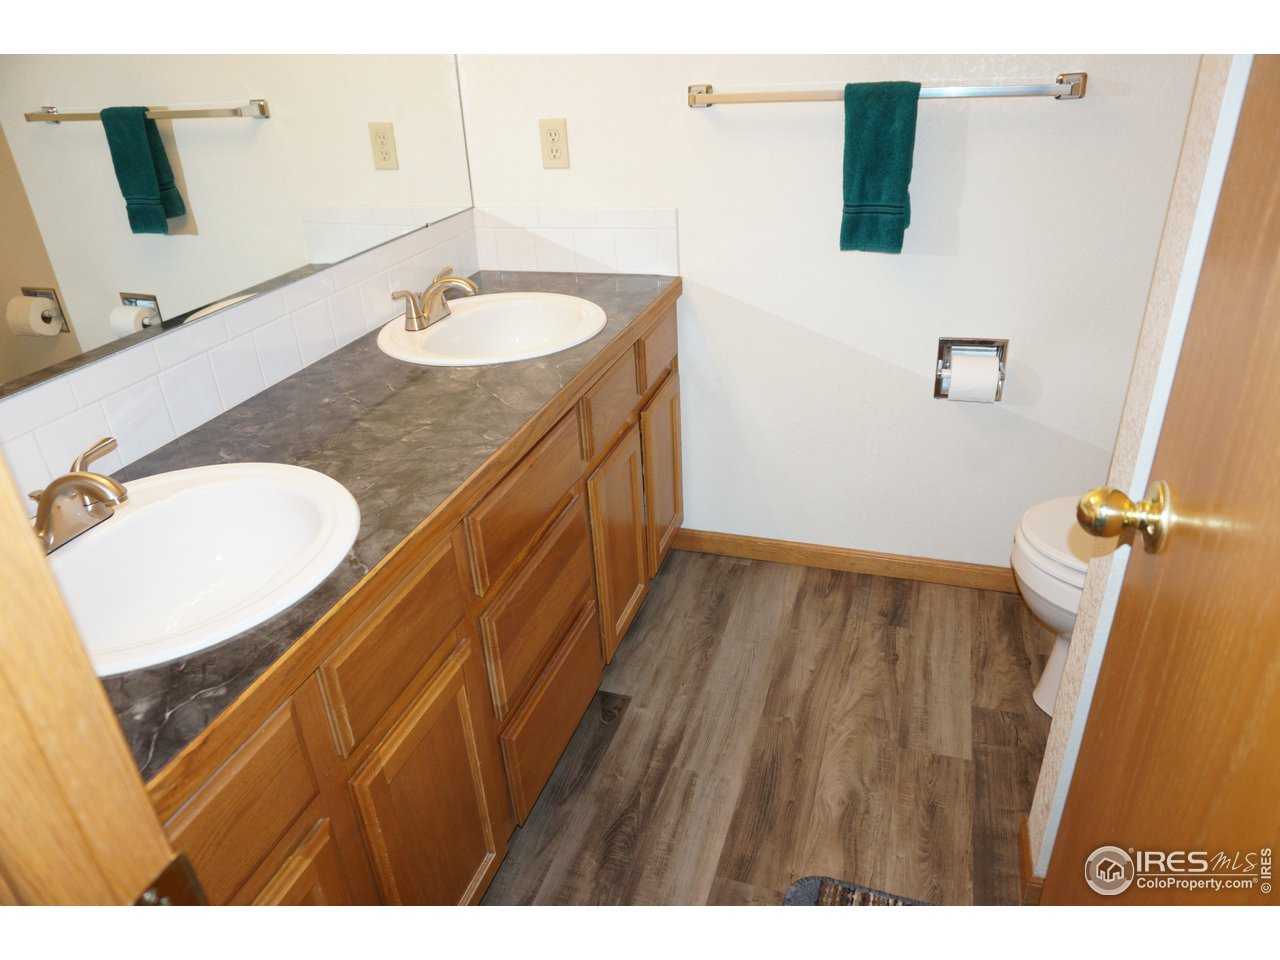 3/4 Bath and double vanity in Primary Bedroom